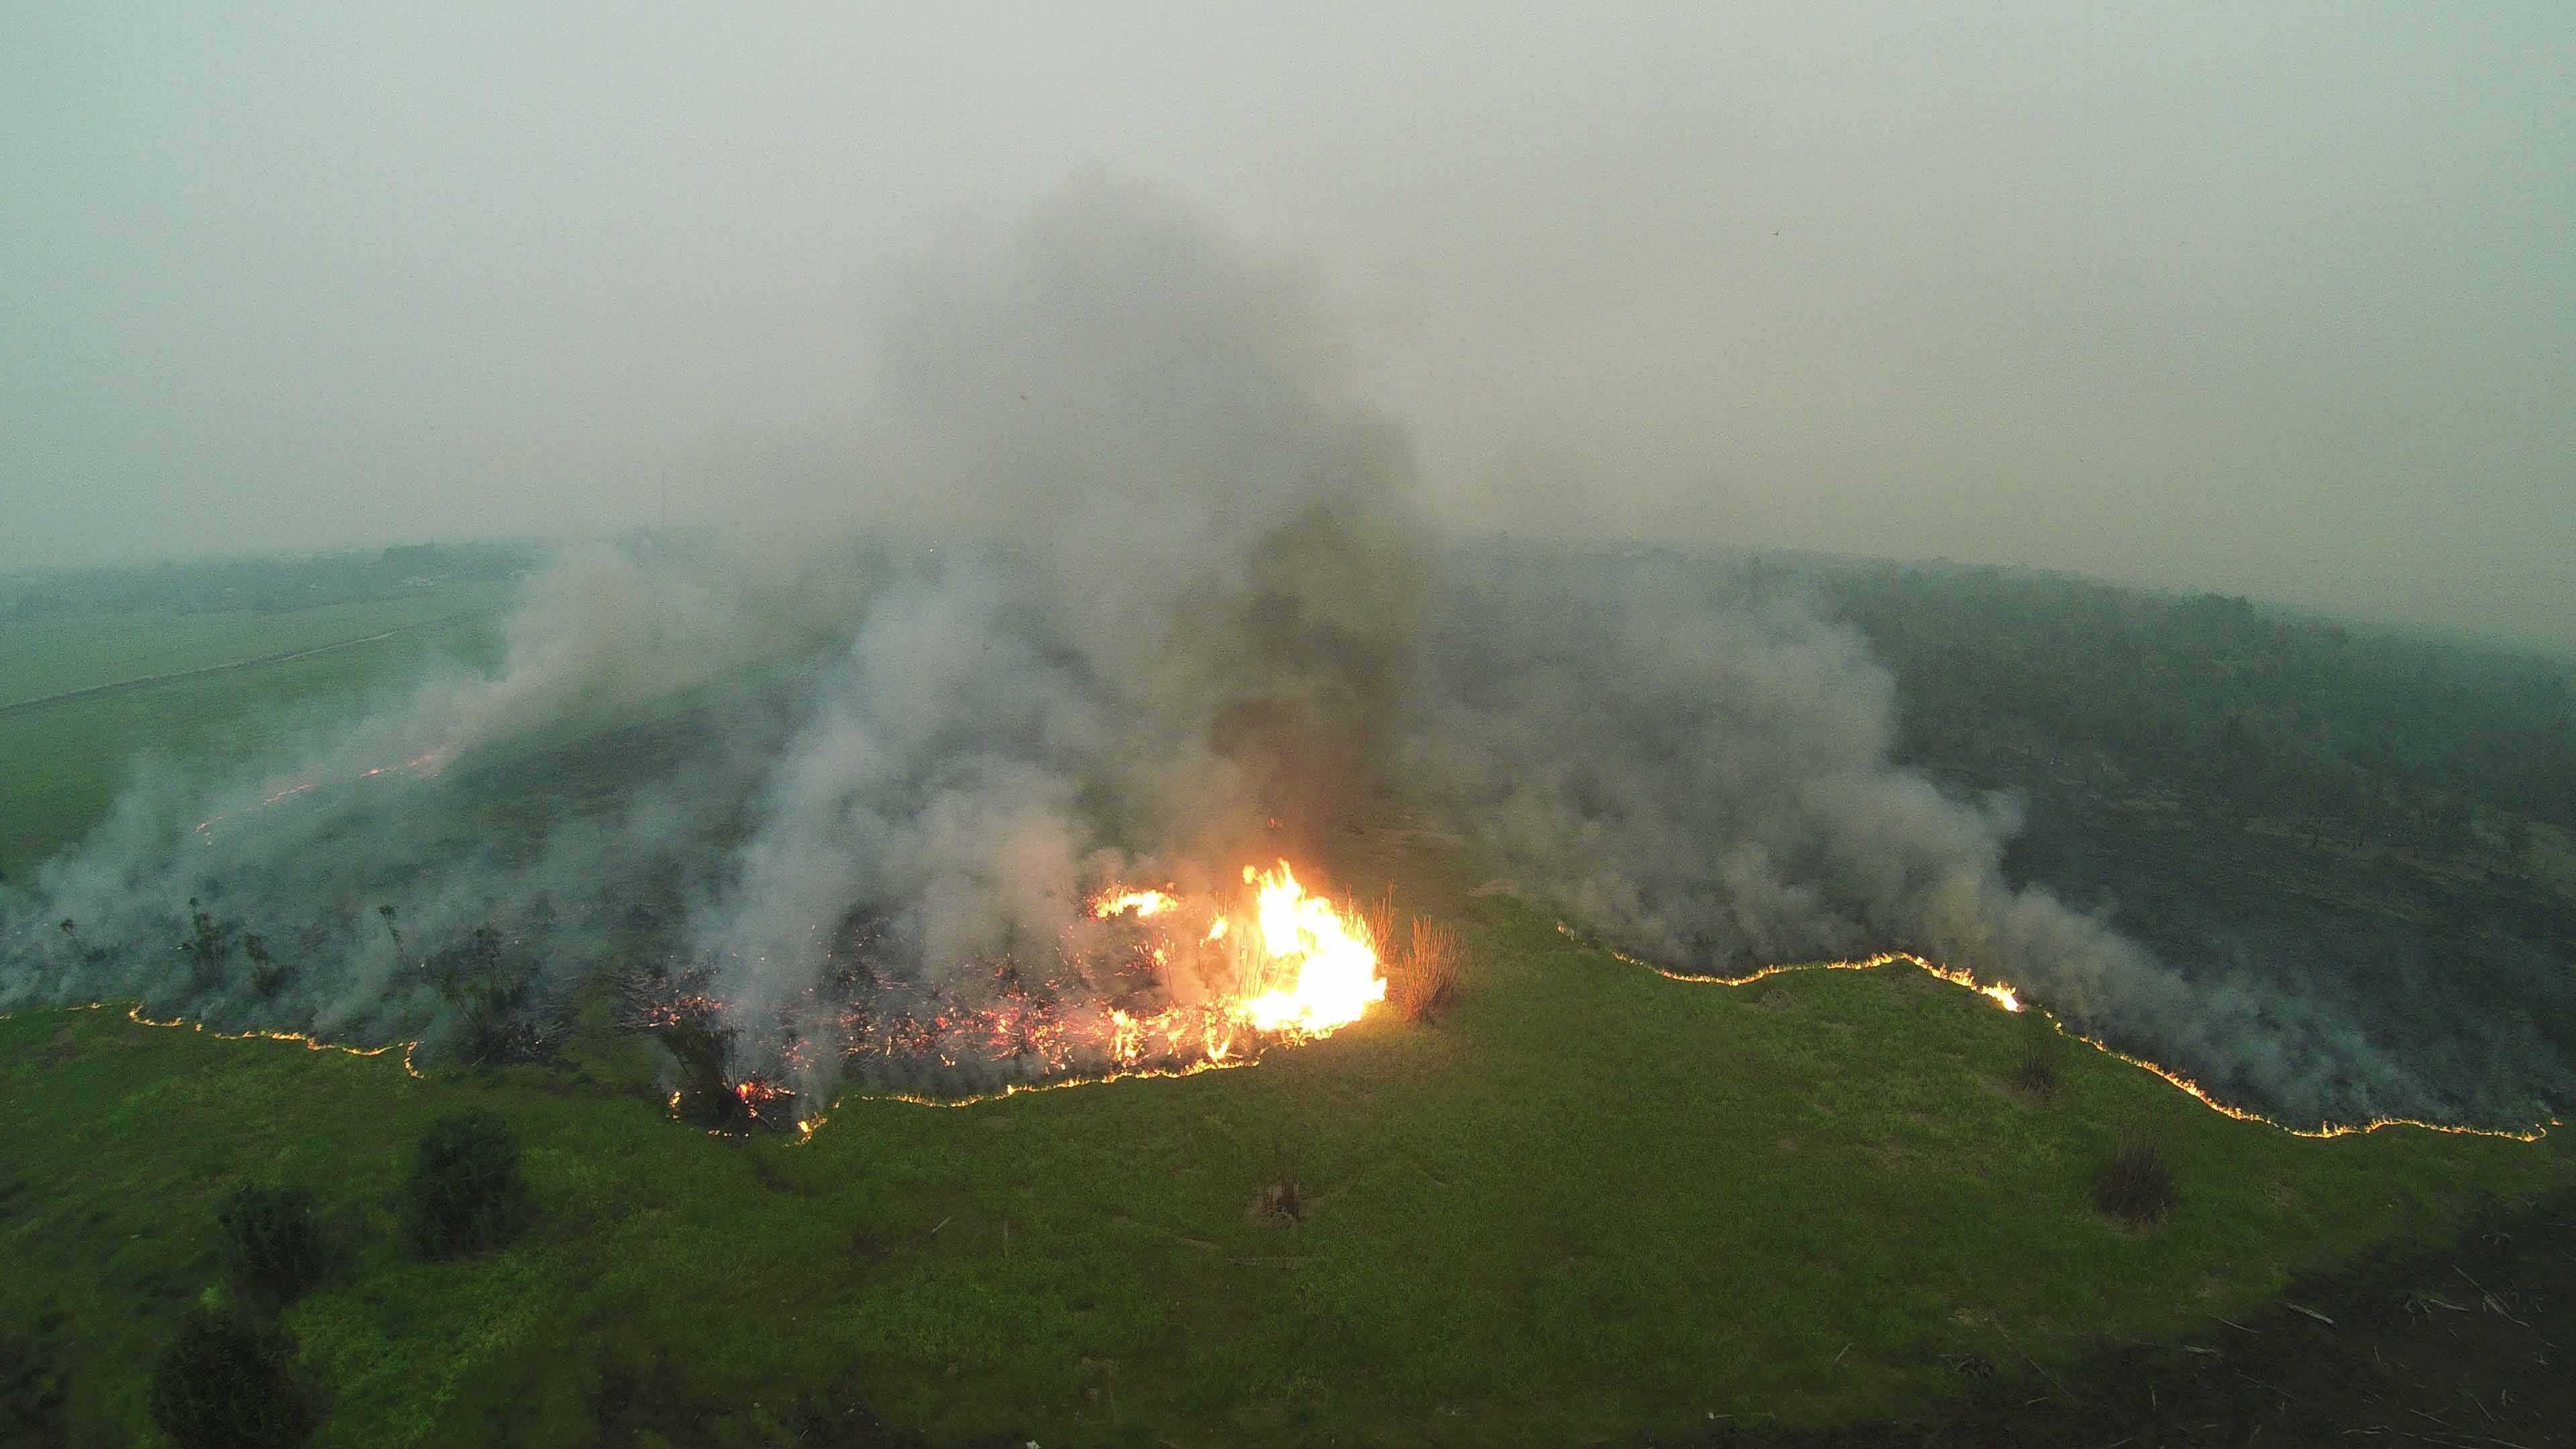 Peatland fire in Sabangau